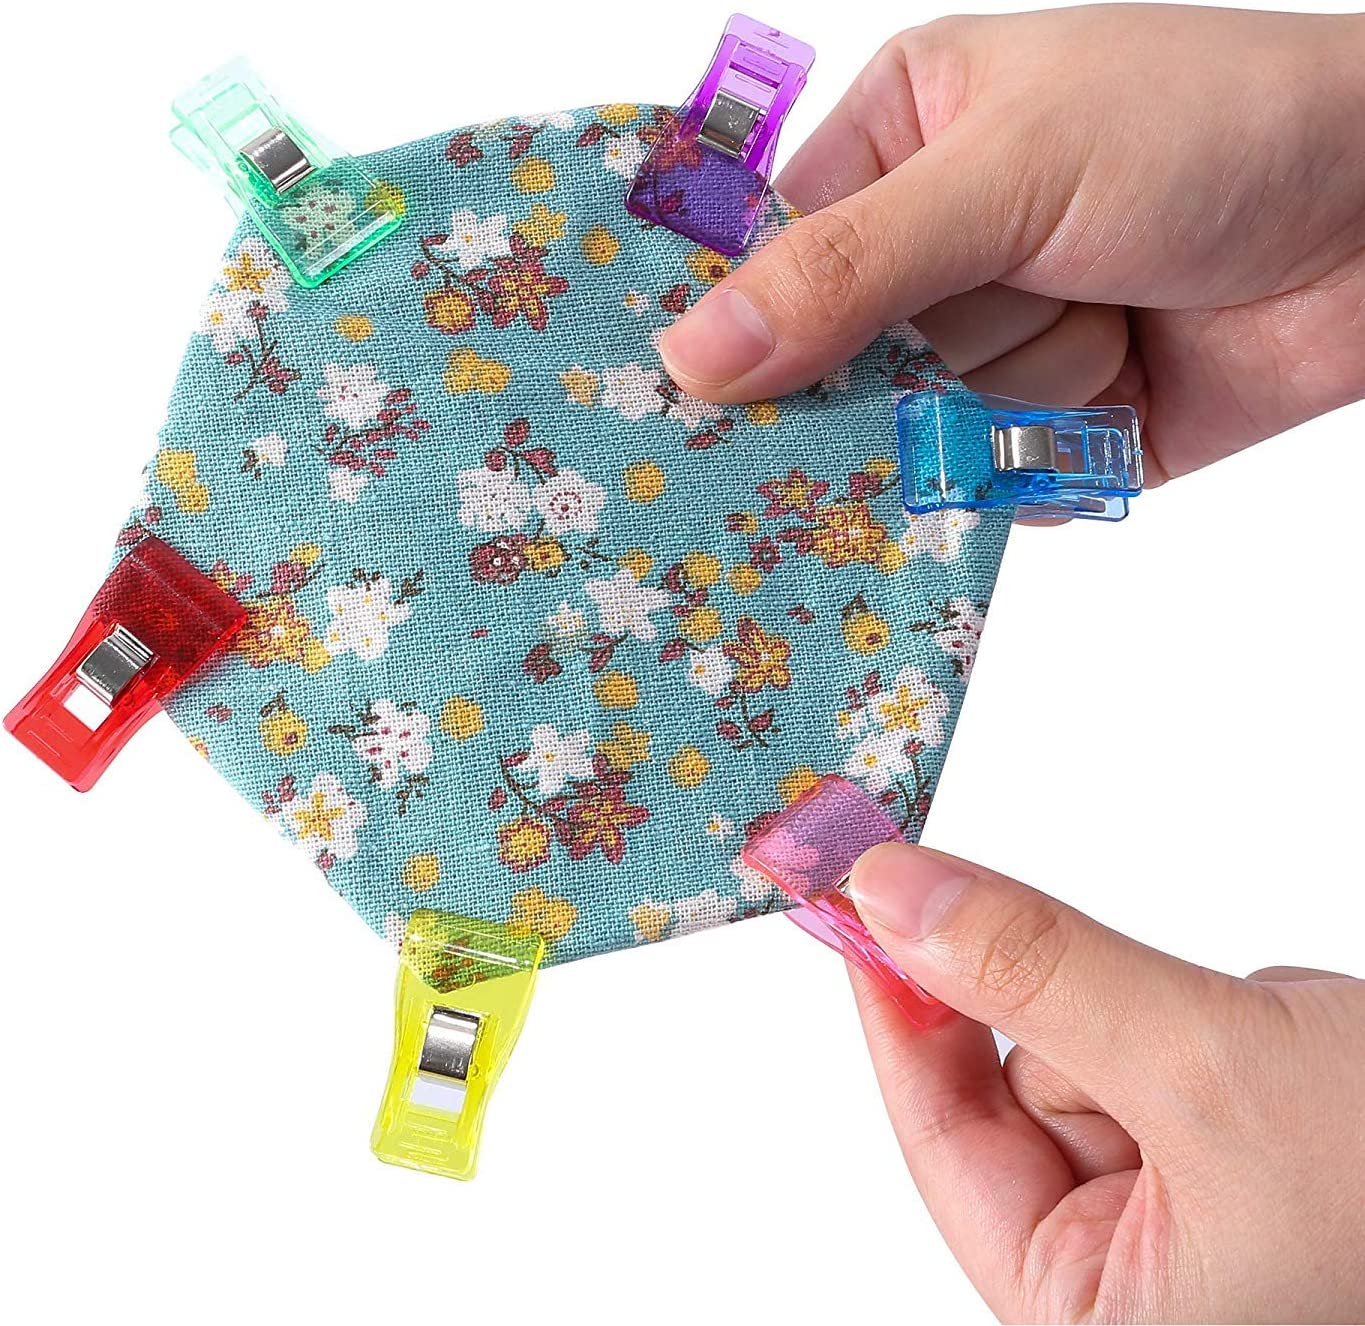 Sewing Accessories Craft Clips Set for Embroidery//Sewing//Crochet//DIY 9 Colours Queta Sewing Clips 120pcs Plastic Sewing Fabric Clips